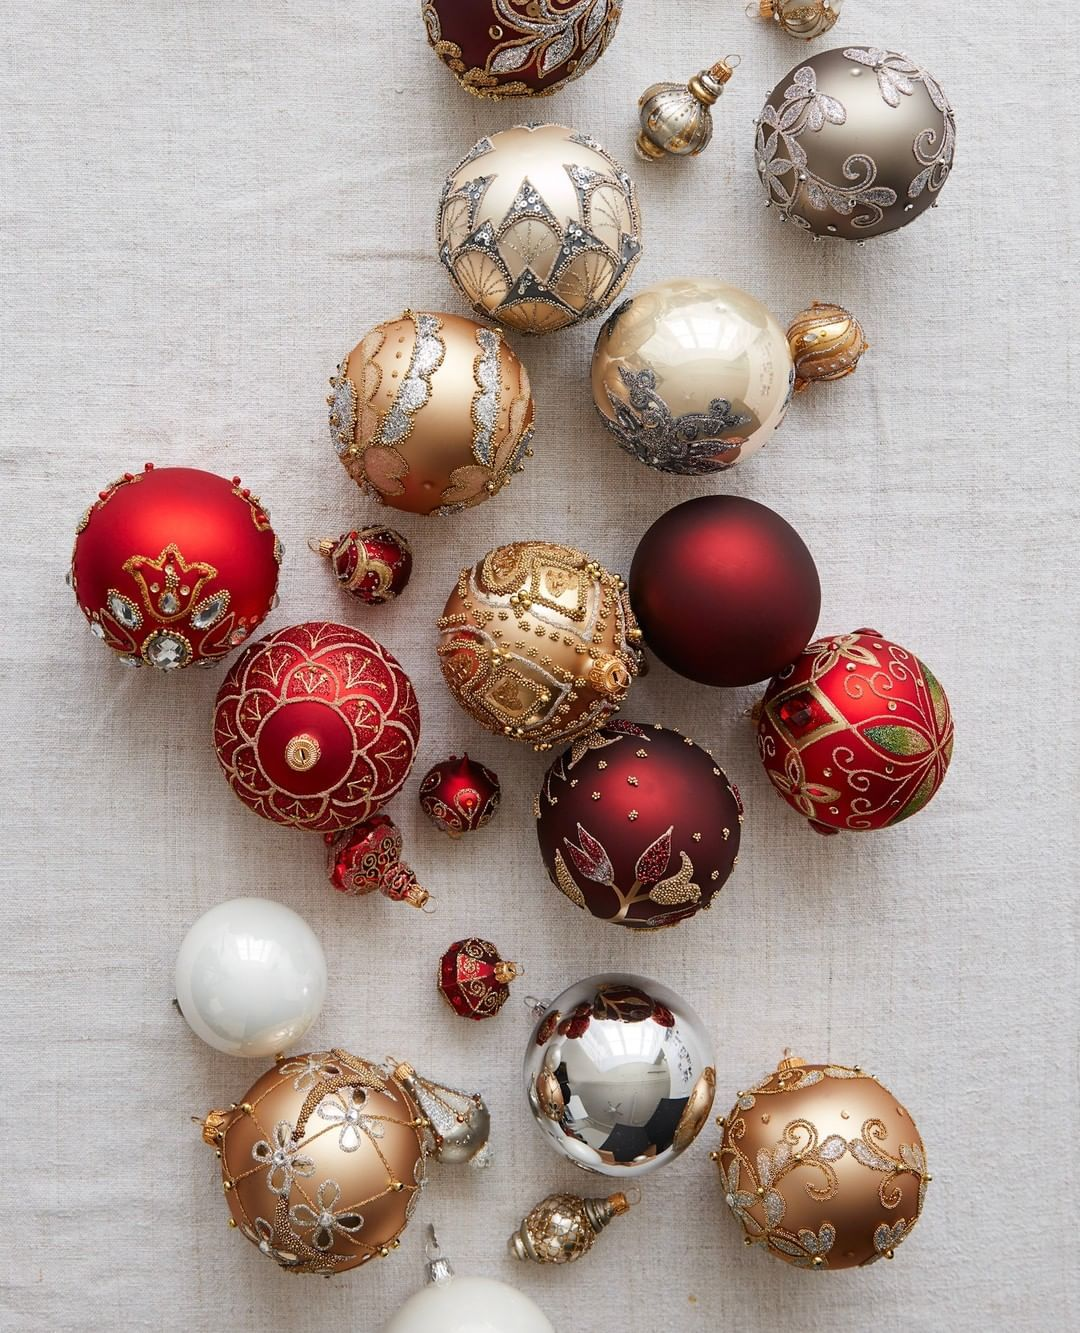 Balsam Hill On Instagram Take Advantage Of Big Savings On Premium Christmas Decorations Shop Link Glass Ball Ornaments Christmas Ornament Sets Ornament Set